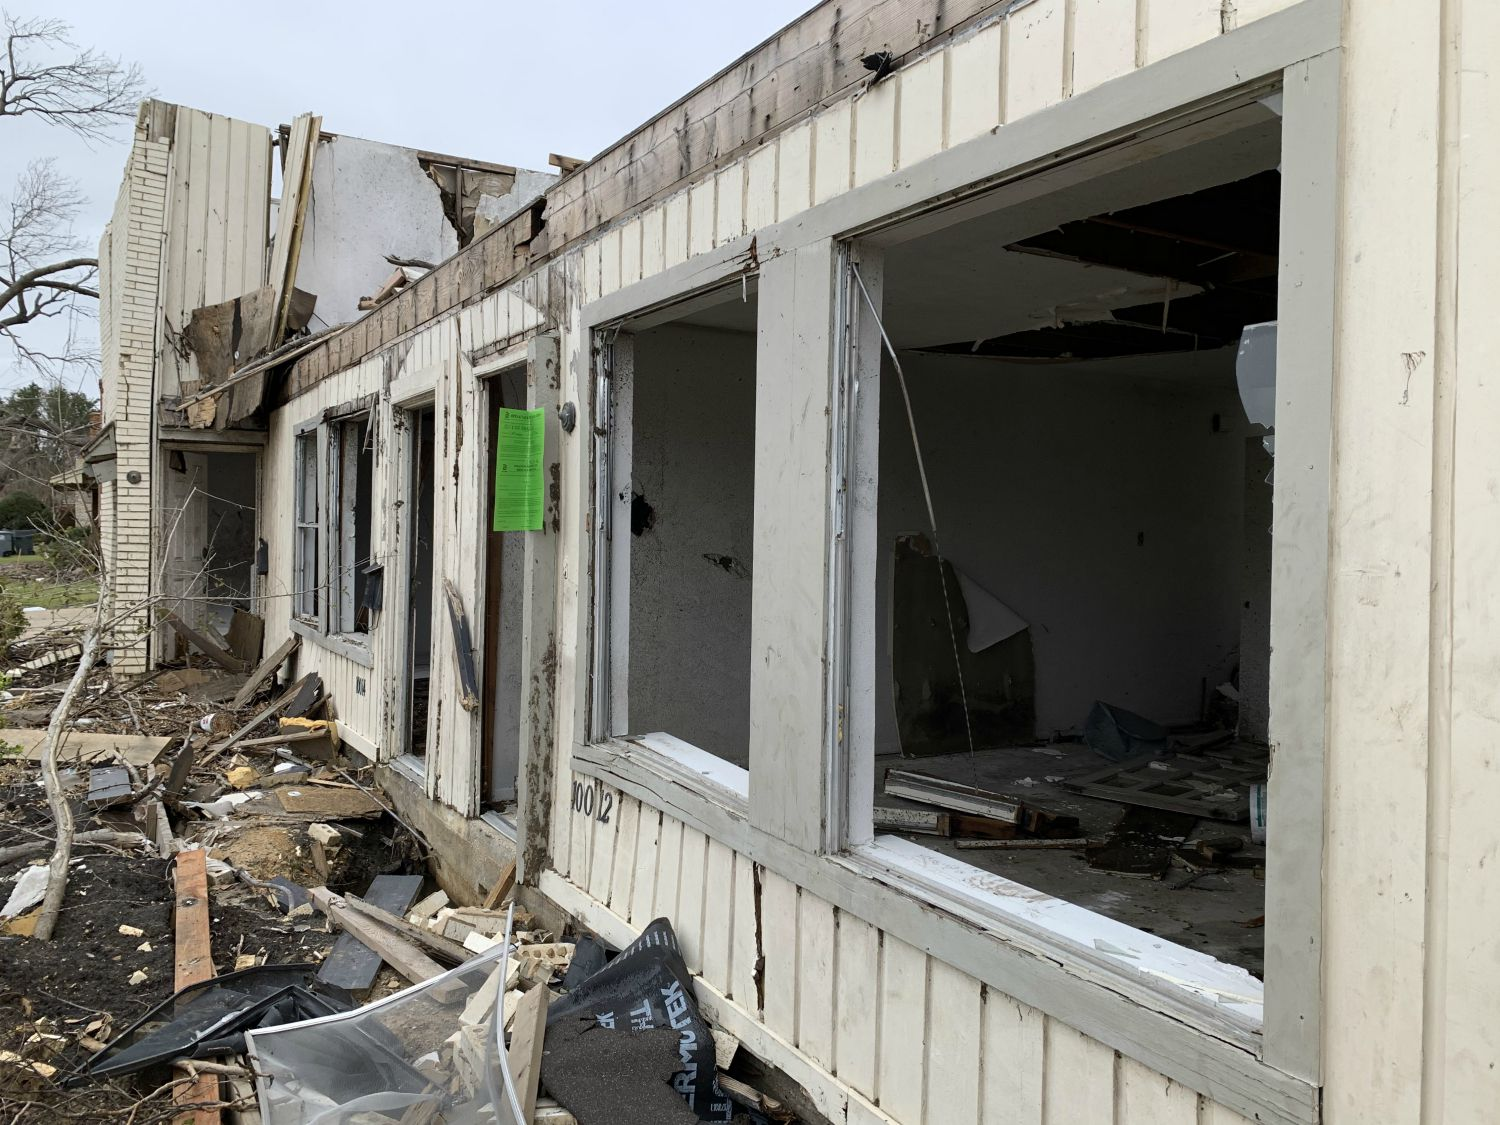 """Code is finally tacking green """"open and vacant"""" violation notices to the front of tornado-damaged homes, like this one on Glenrio Lane near Marsh and Walnut Hill lanes in northwest Dallas."""